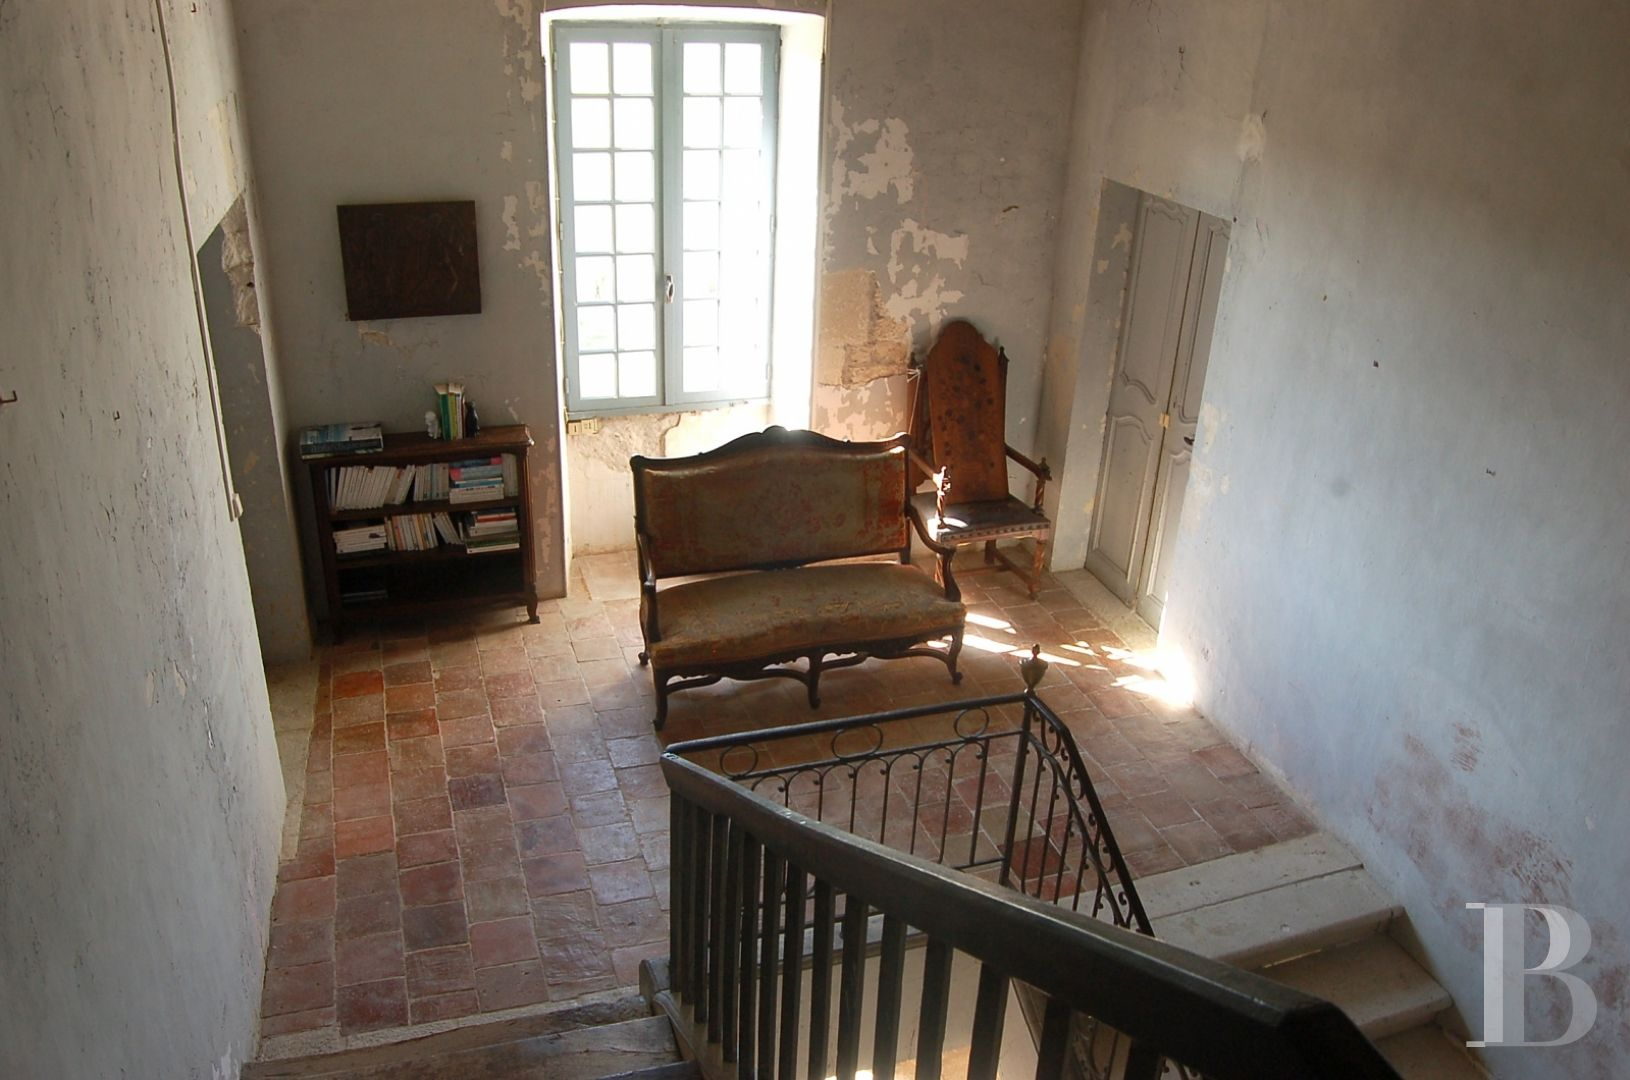 property for sale France midi pyrenees residences historic - 12 zoom